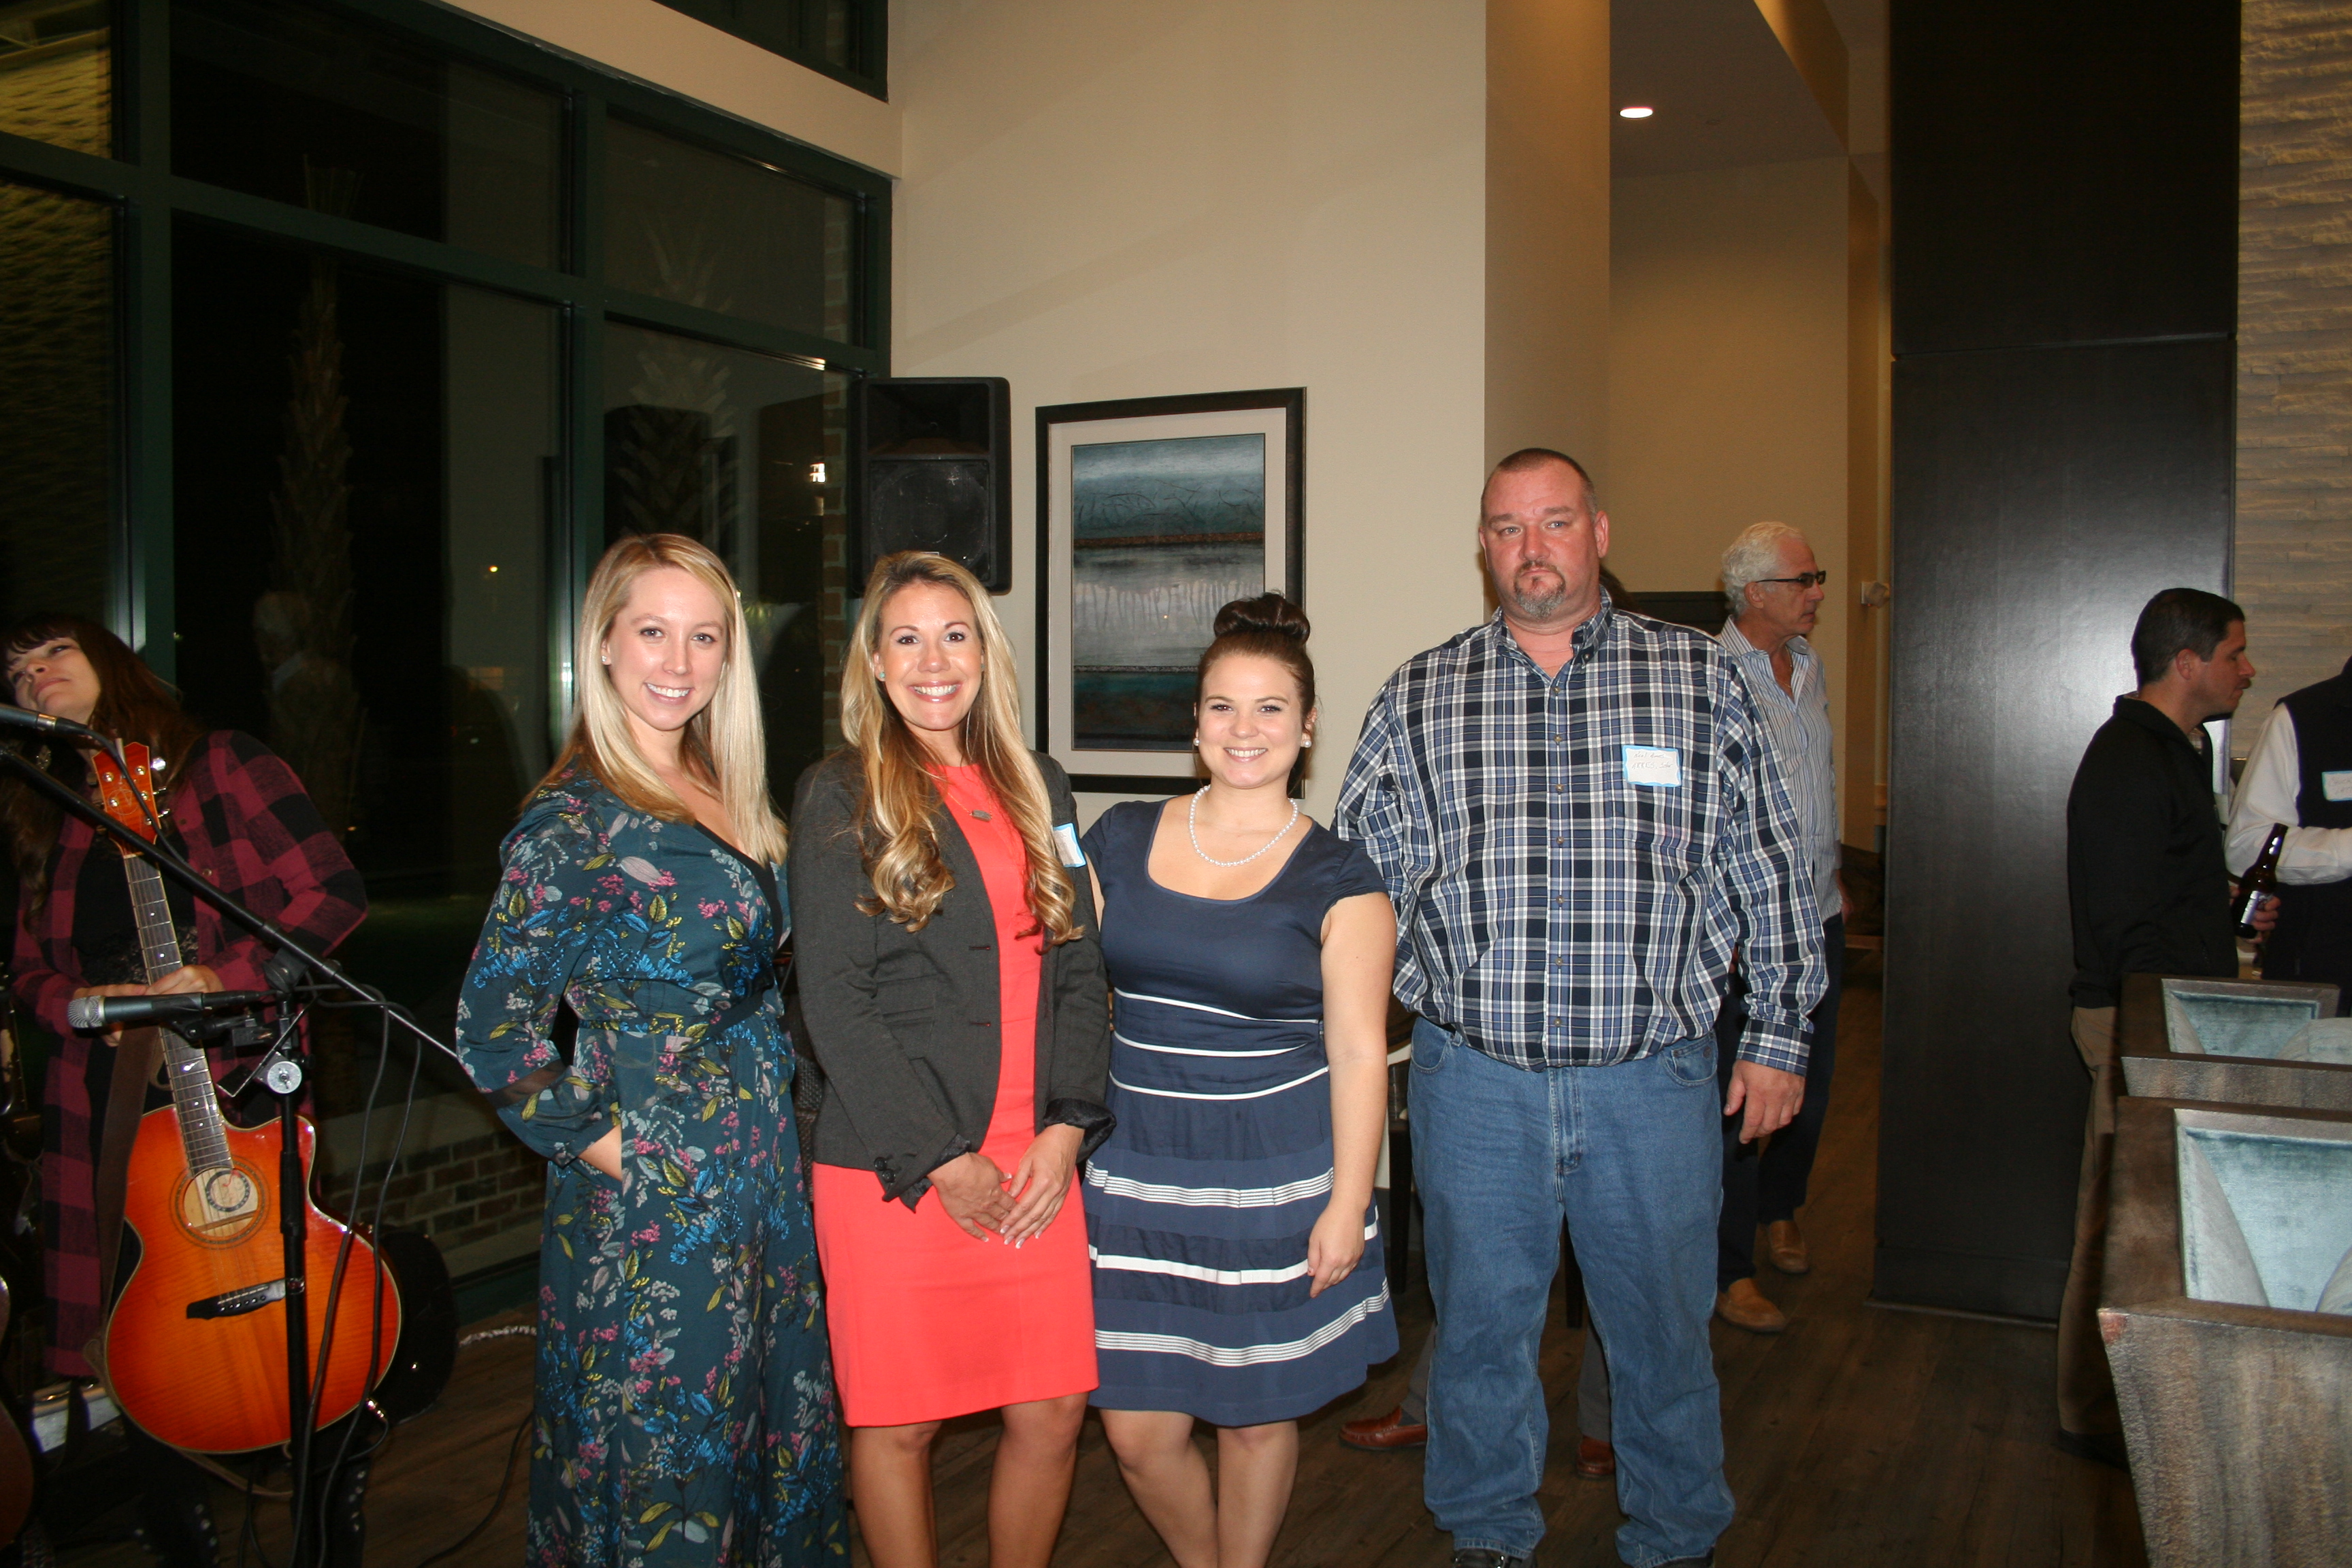 The November DIBA Block Party was sponosred by Megan Pawlowski of Ridehouse, Natasha Brehm and Keri Padgett of Simmons Park Apartments, and Neal Amos of Solar Power.